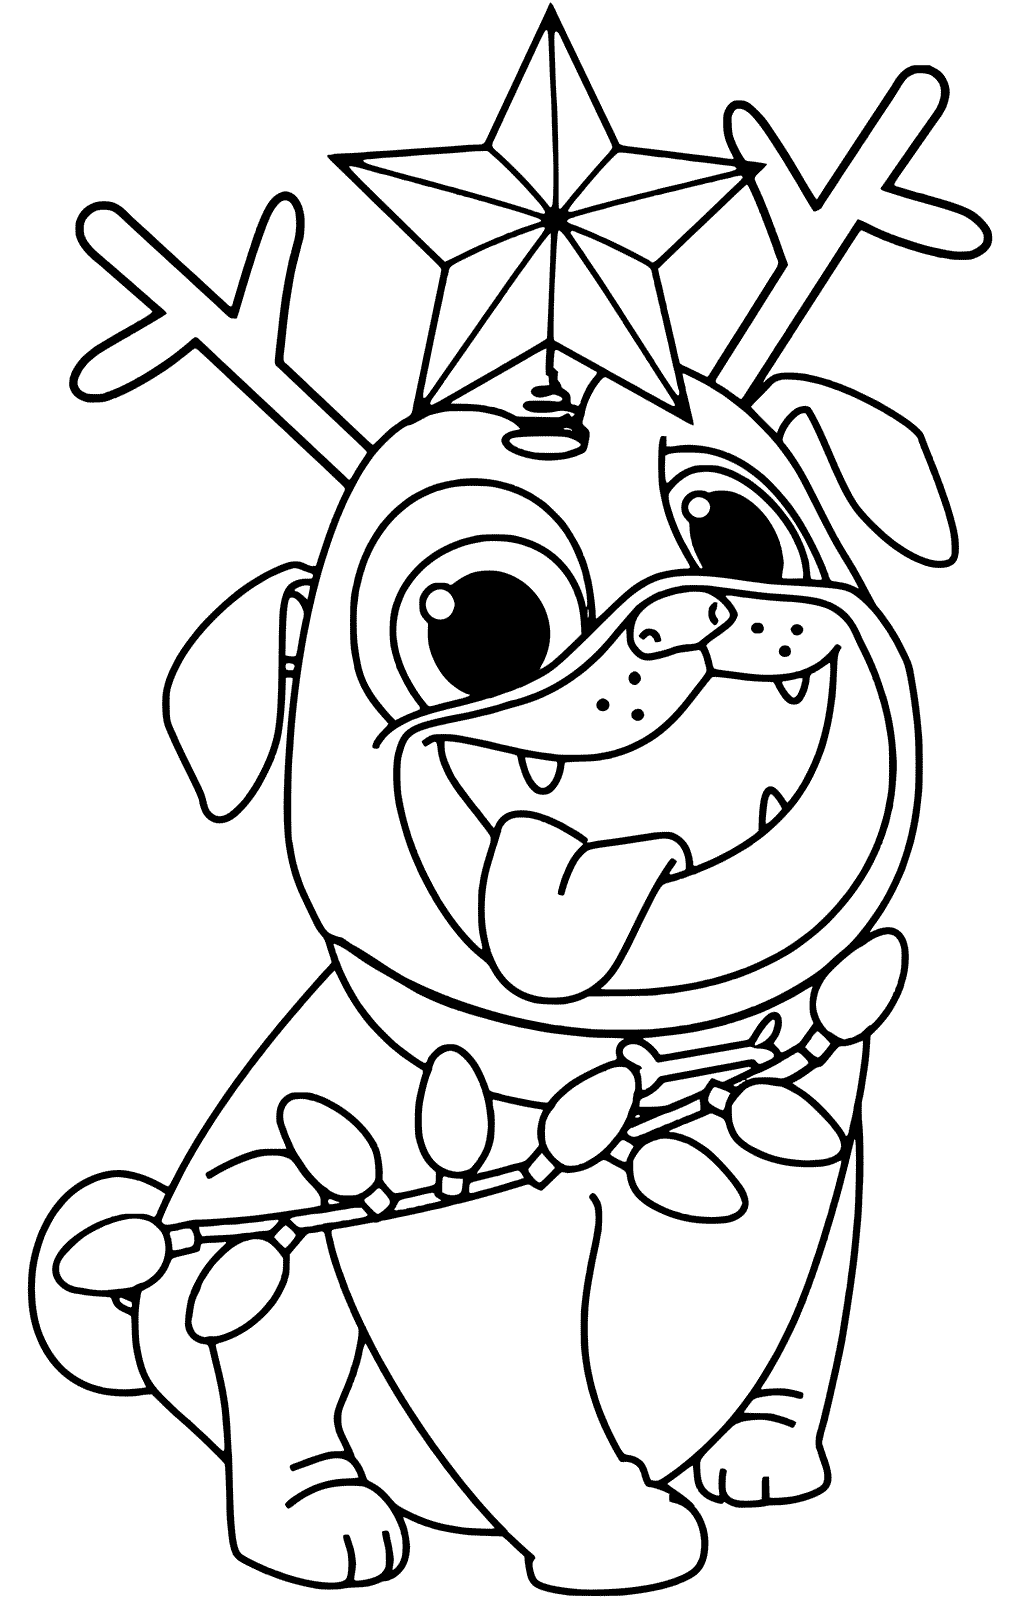 Puppy Dog Pals Coloring Pages Best Coloring Pages For Kids Puppy Coloring Pages Christmas Coloring Sheets Dog Coloring Page